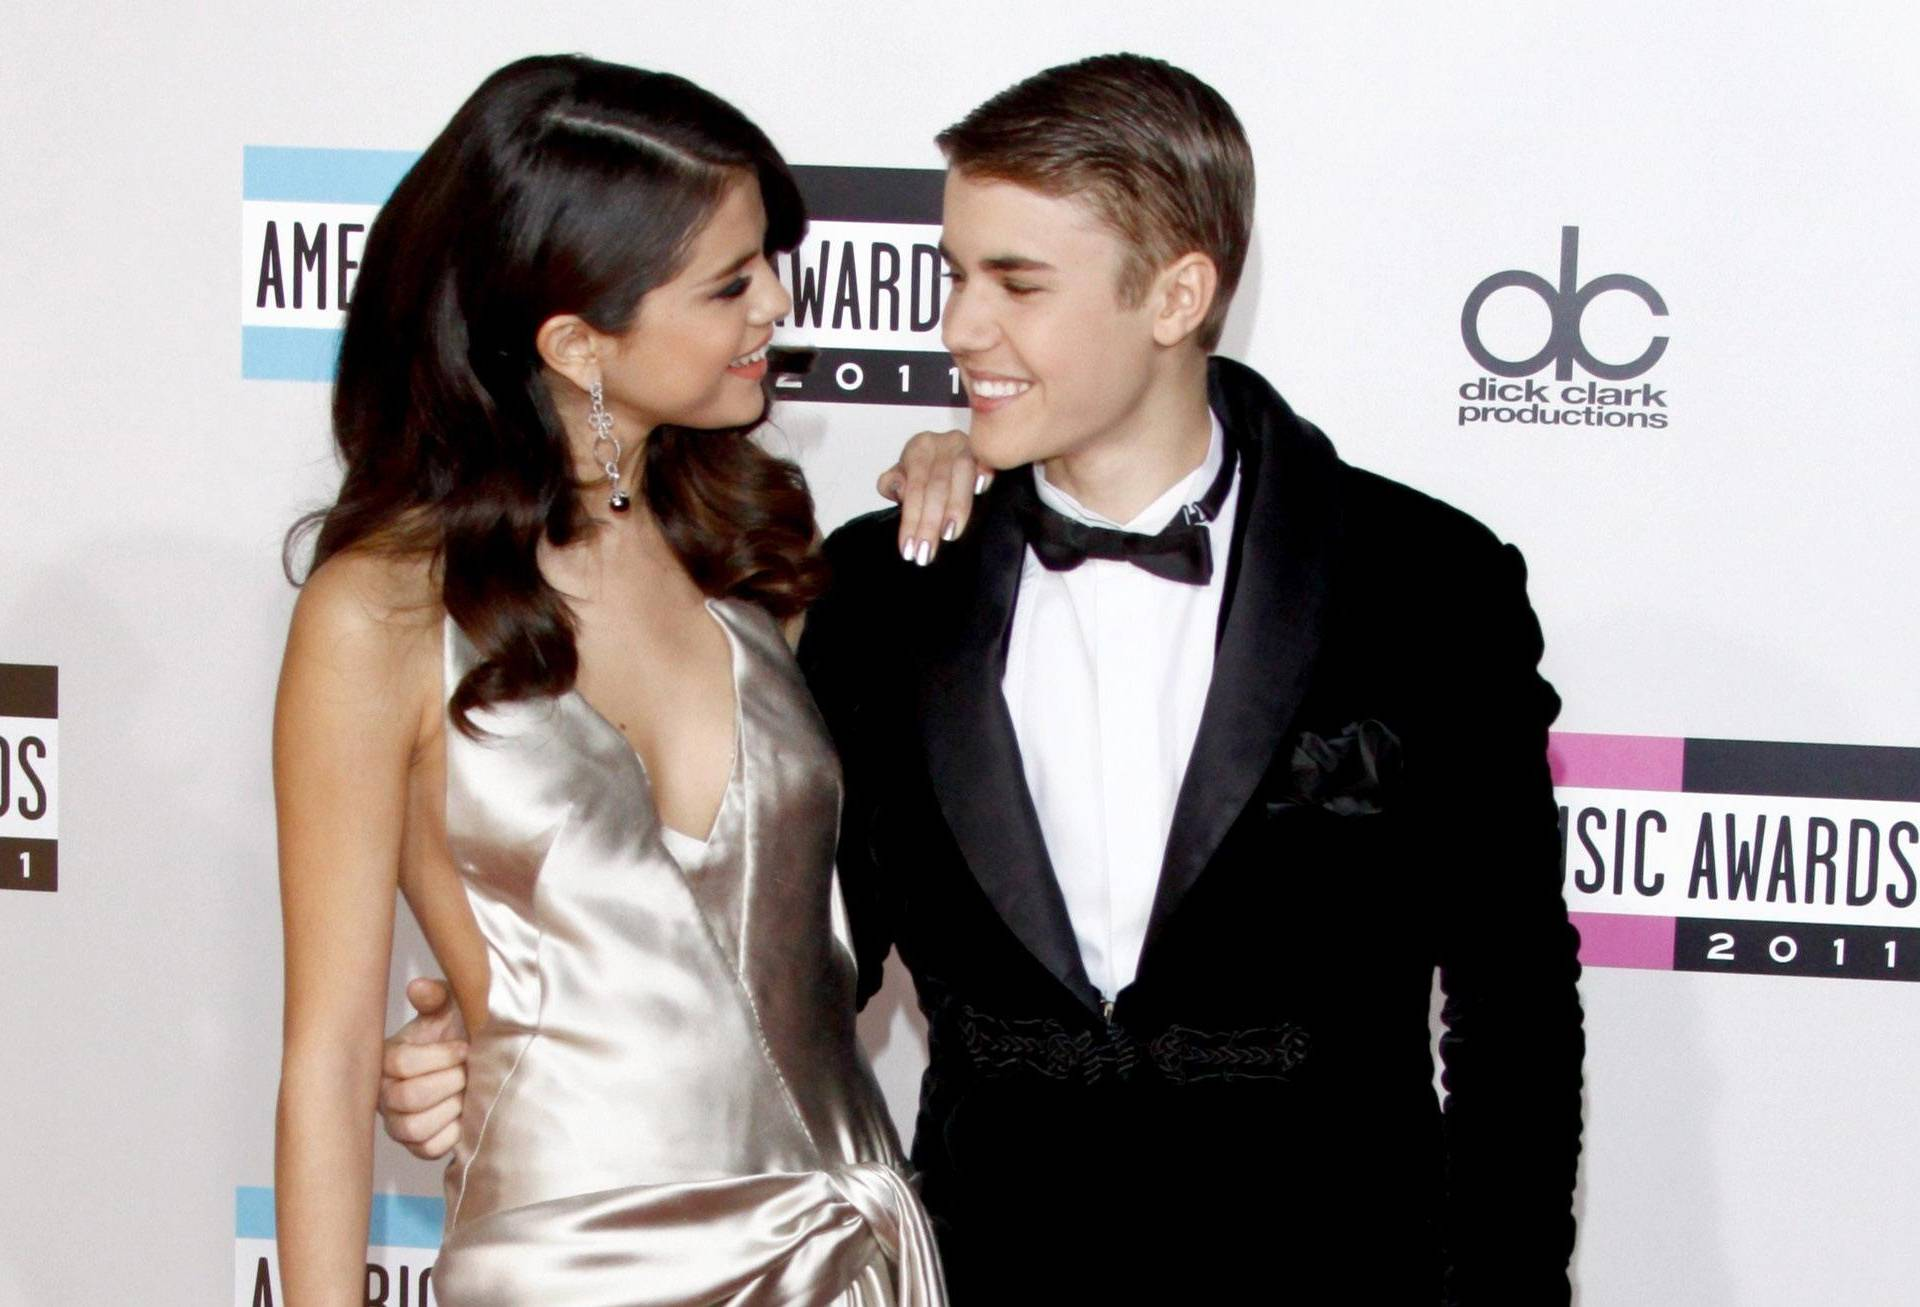 American Music Awards - Justin Bieber and Selena Gomez